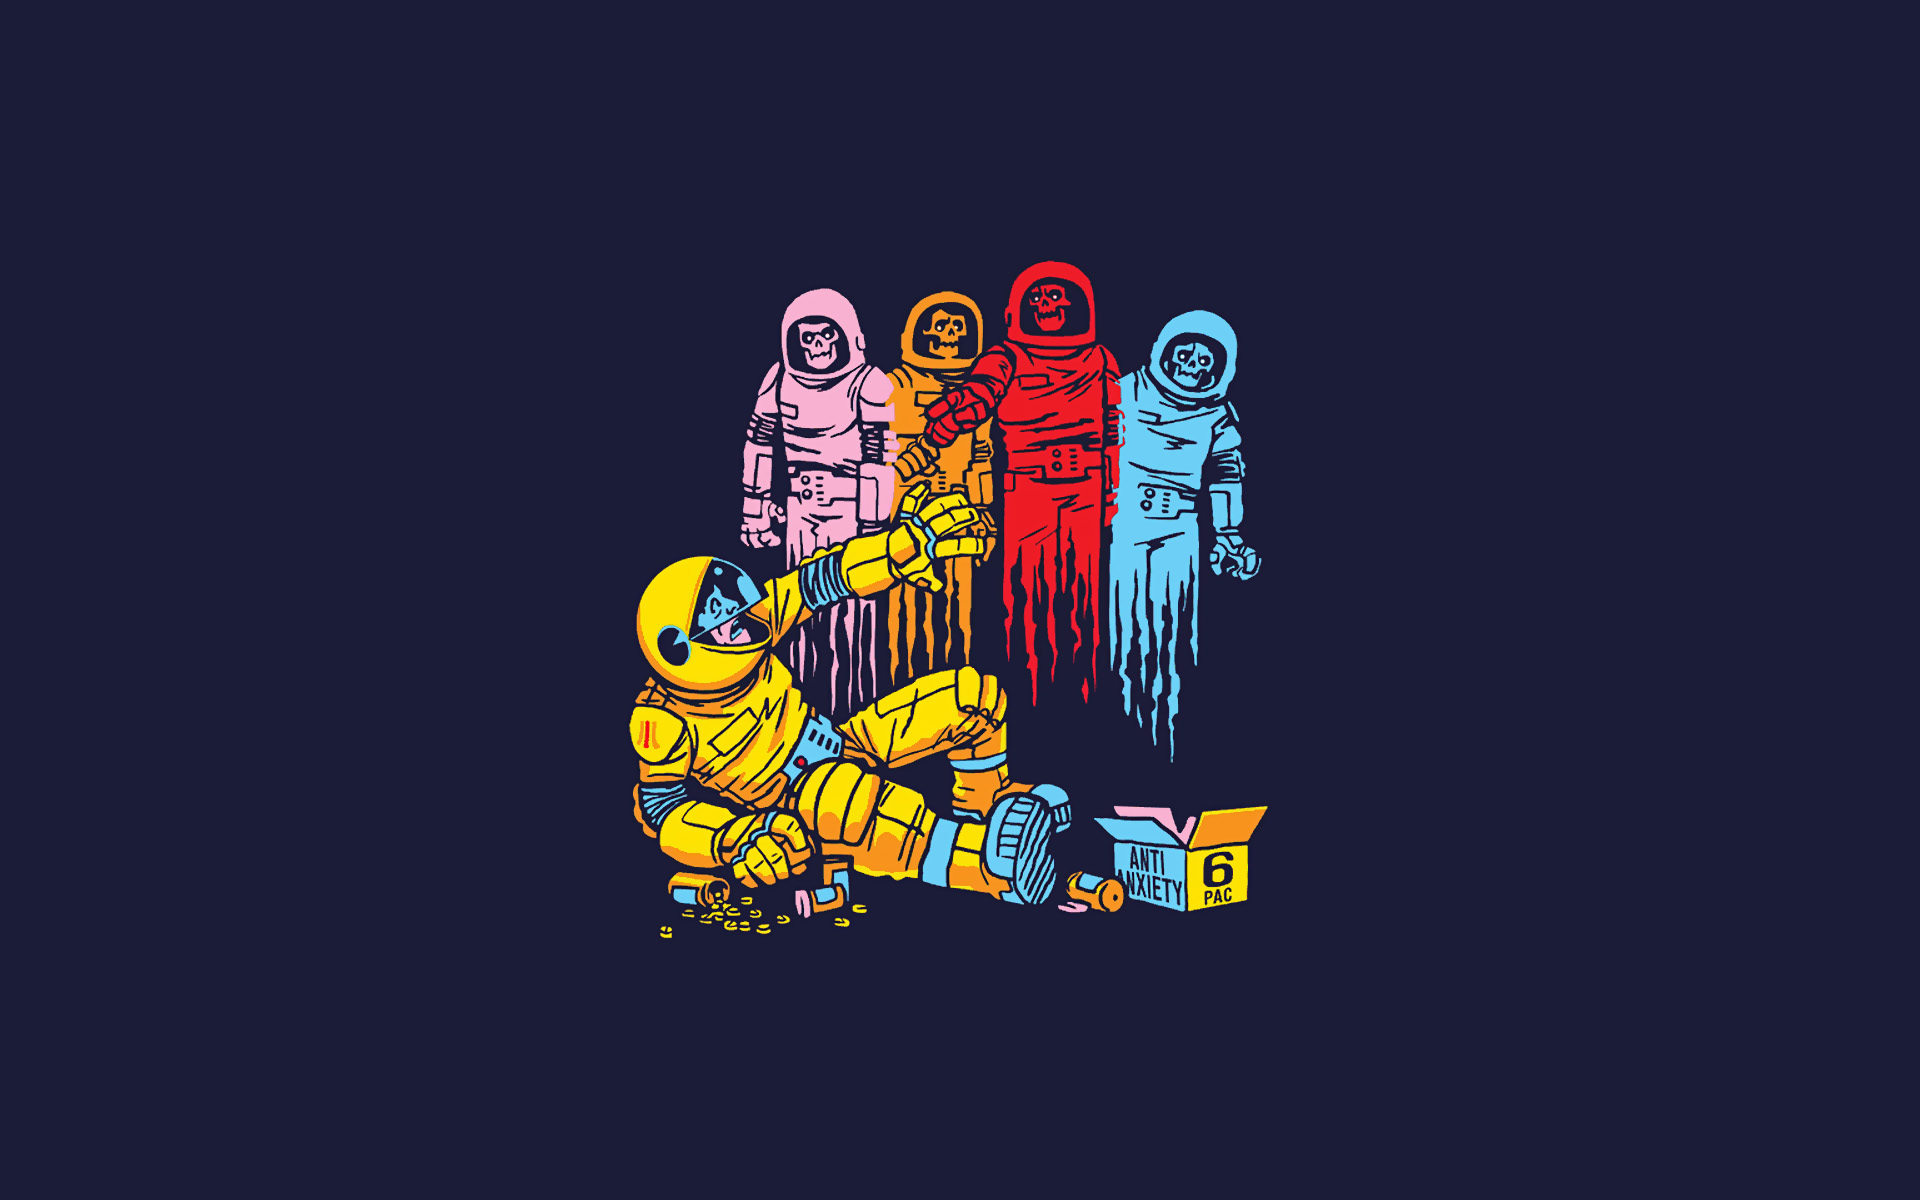 Pac man cosplay gaming for Drugs in space